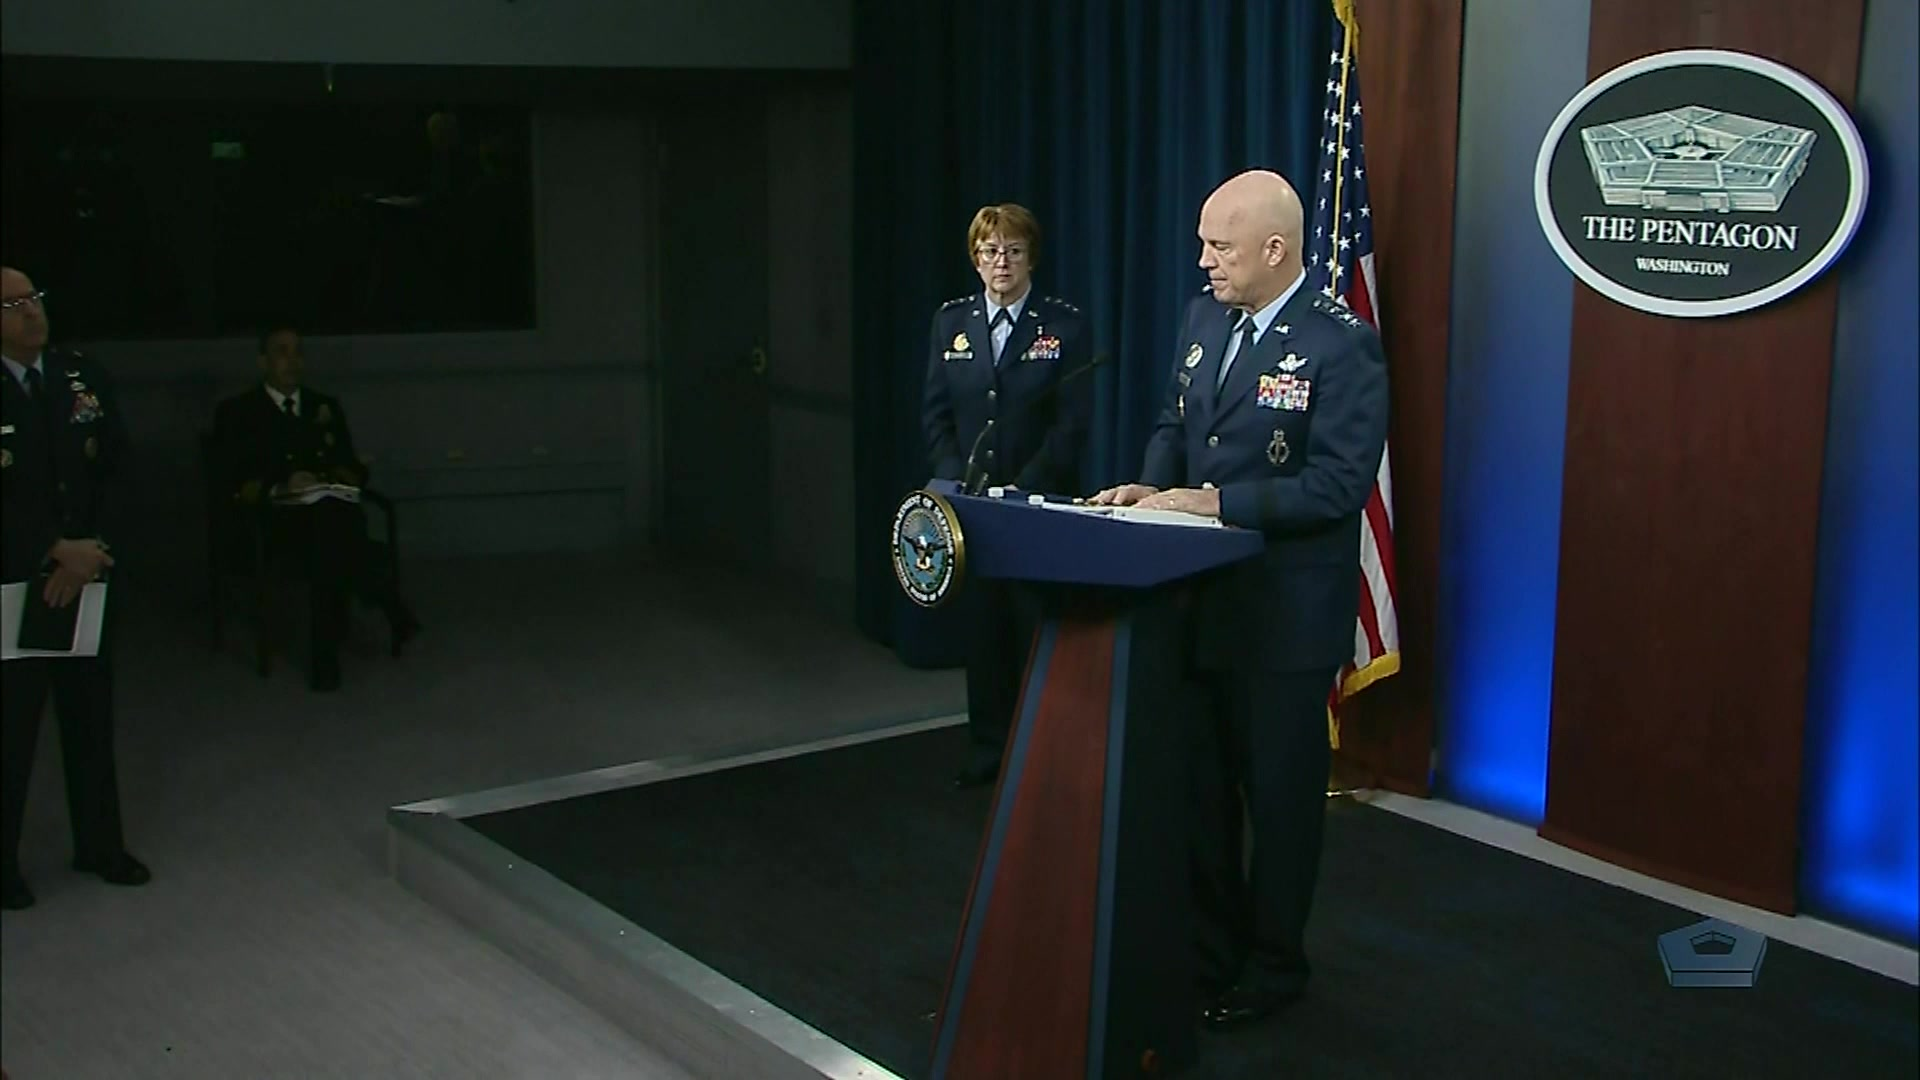 A Space Force general speaks at a lectern.